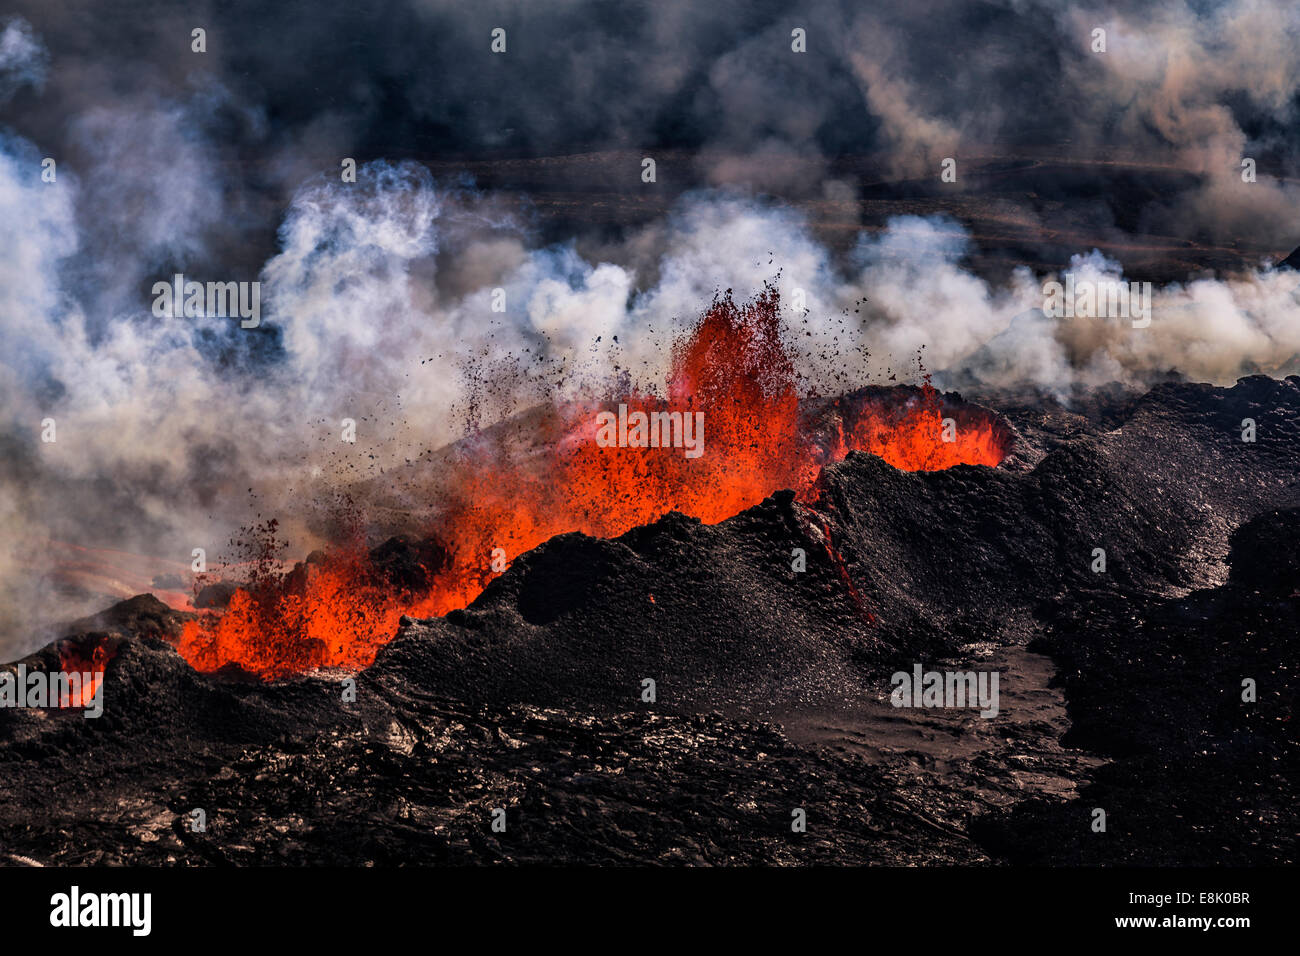 Volcano Eruption at the Holuhraun Fissure near Bardarbunga Volcano, Iceland. Stock Photo